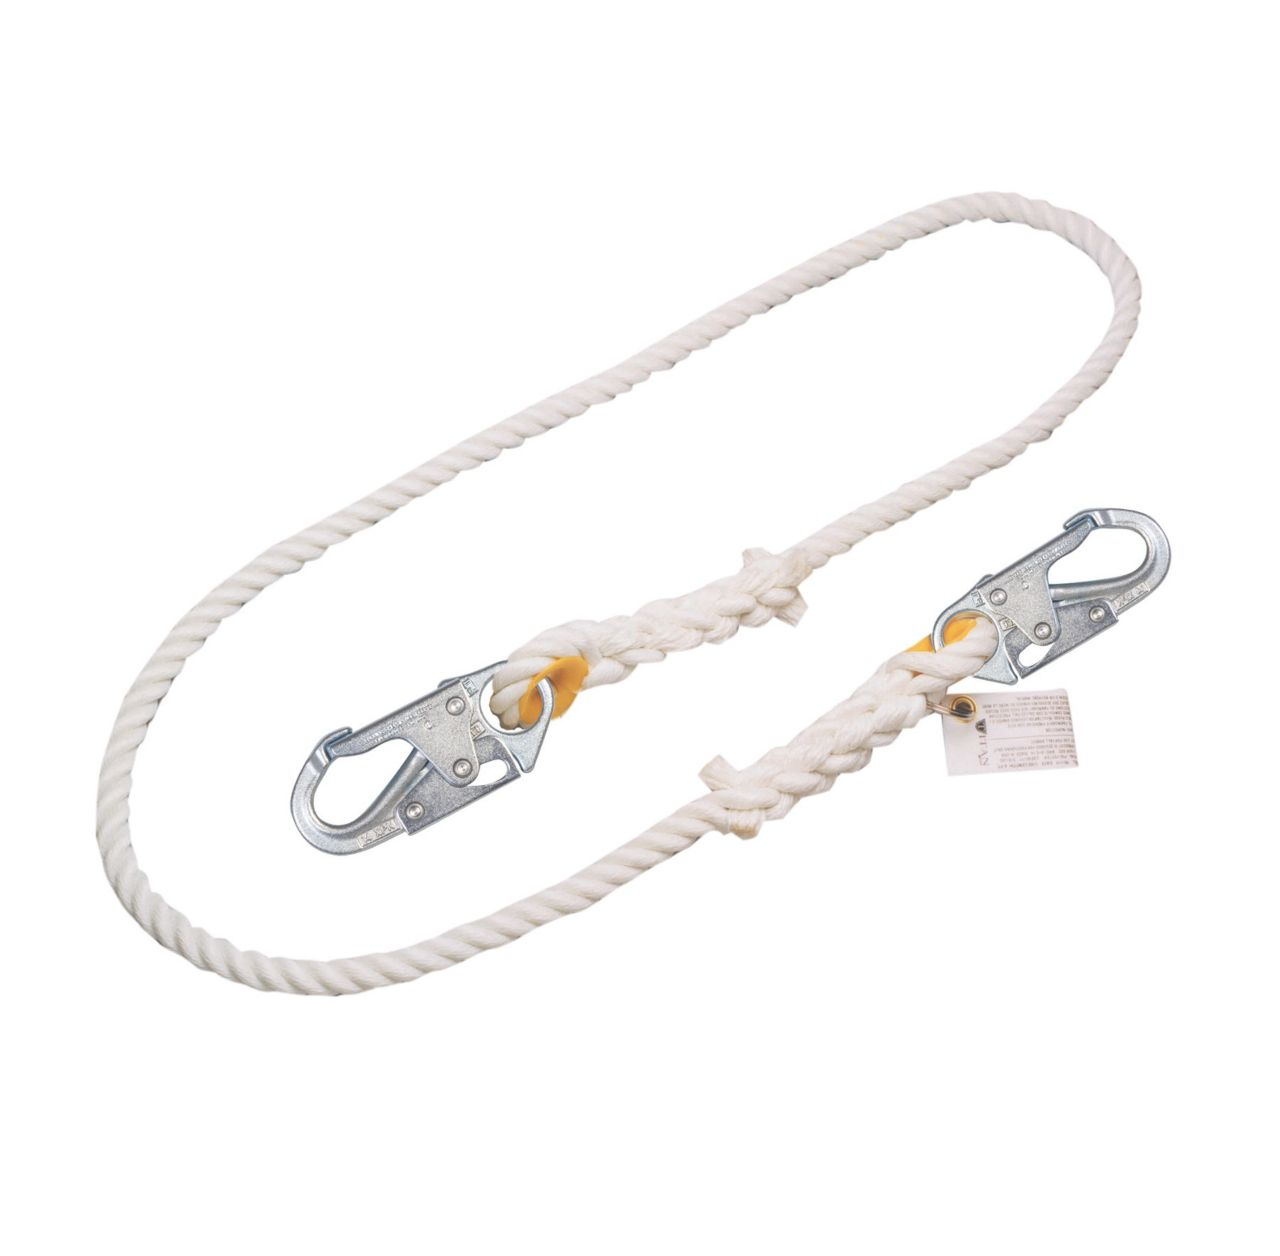 Miller Titan II Positioning and Restraint Lanyards and Positioning Assemblies